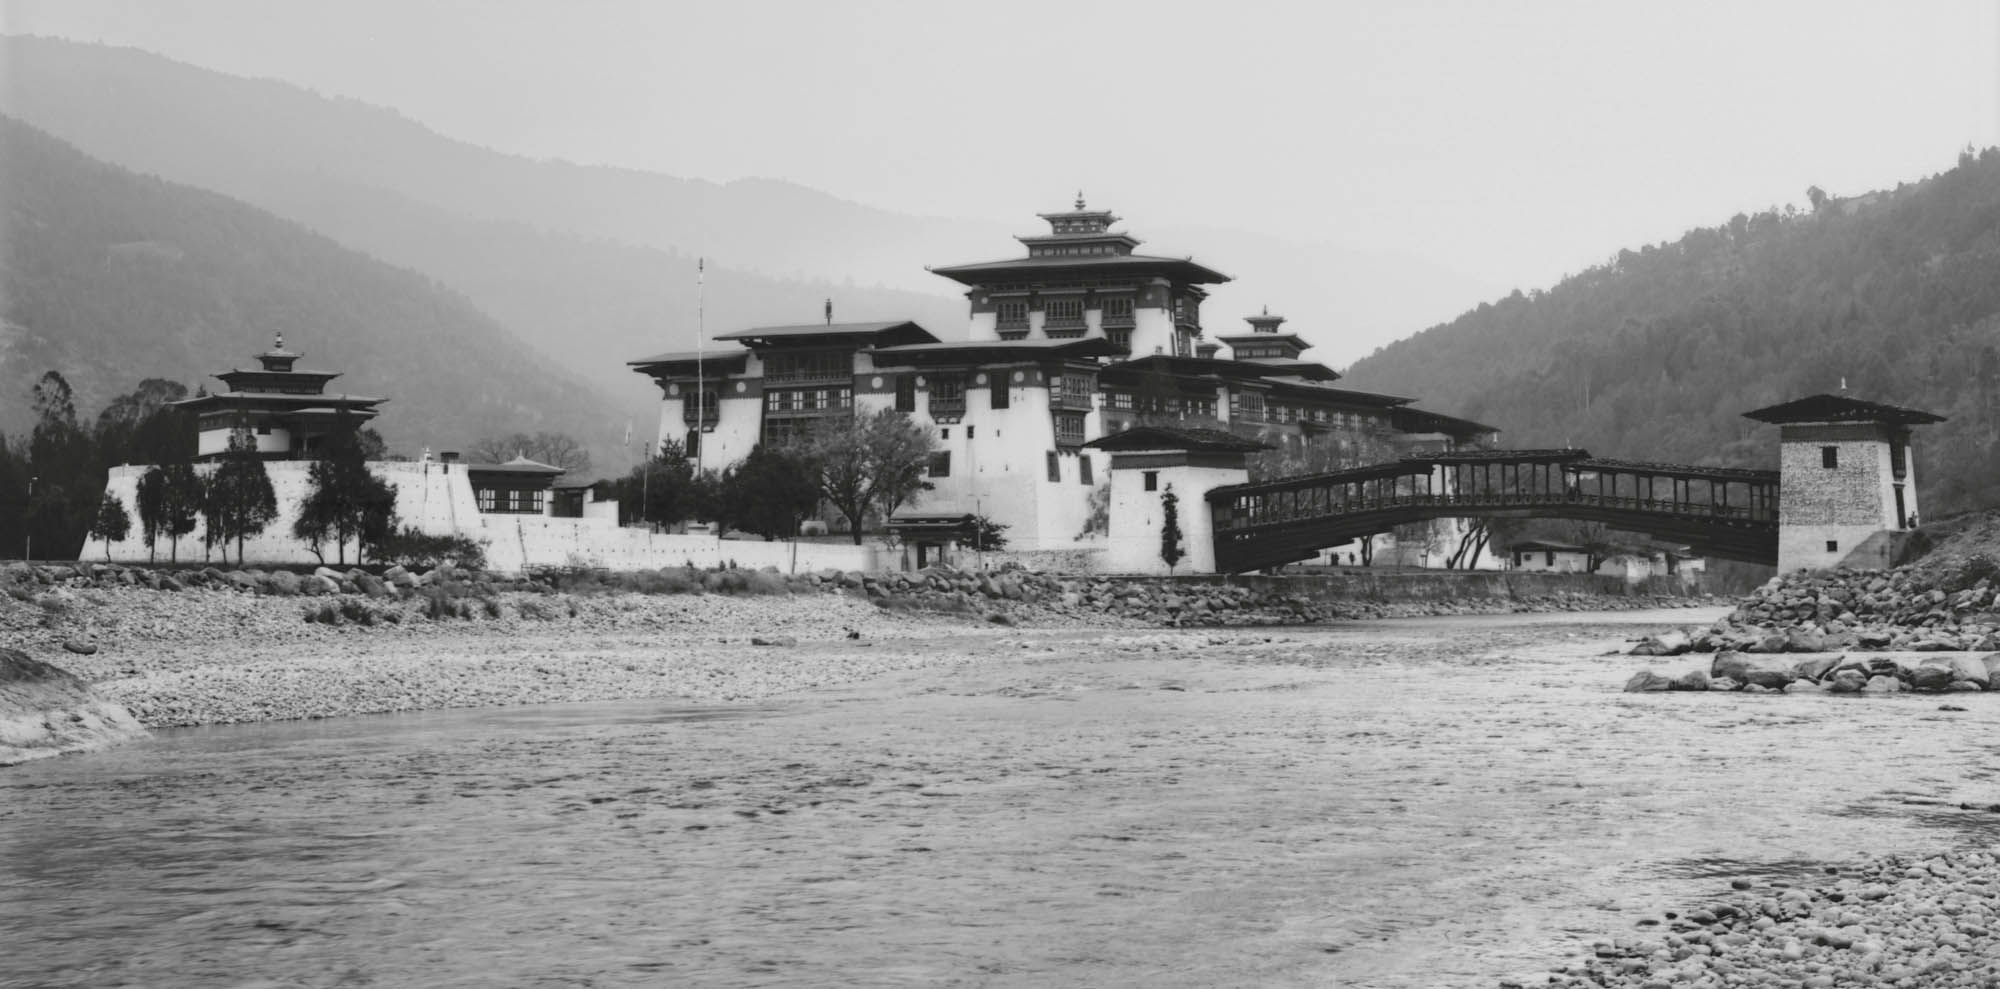 Phunakka Dzong 2010. Rollei ATP Film developed with 510-pyro; this is one of my favorite frames of all time.